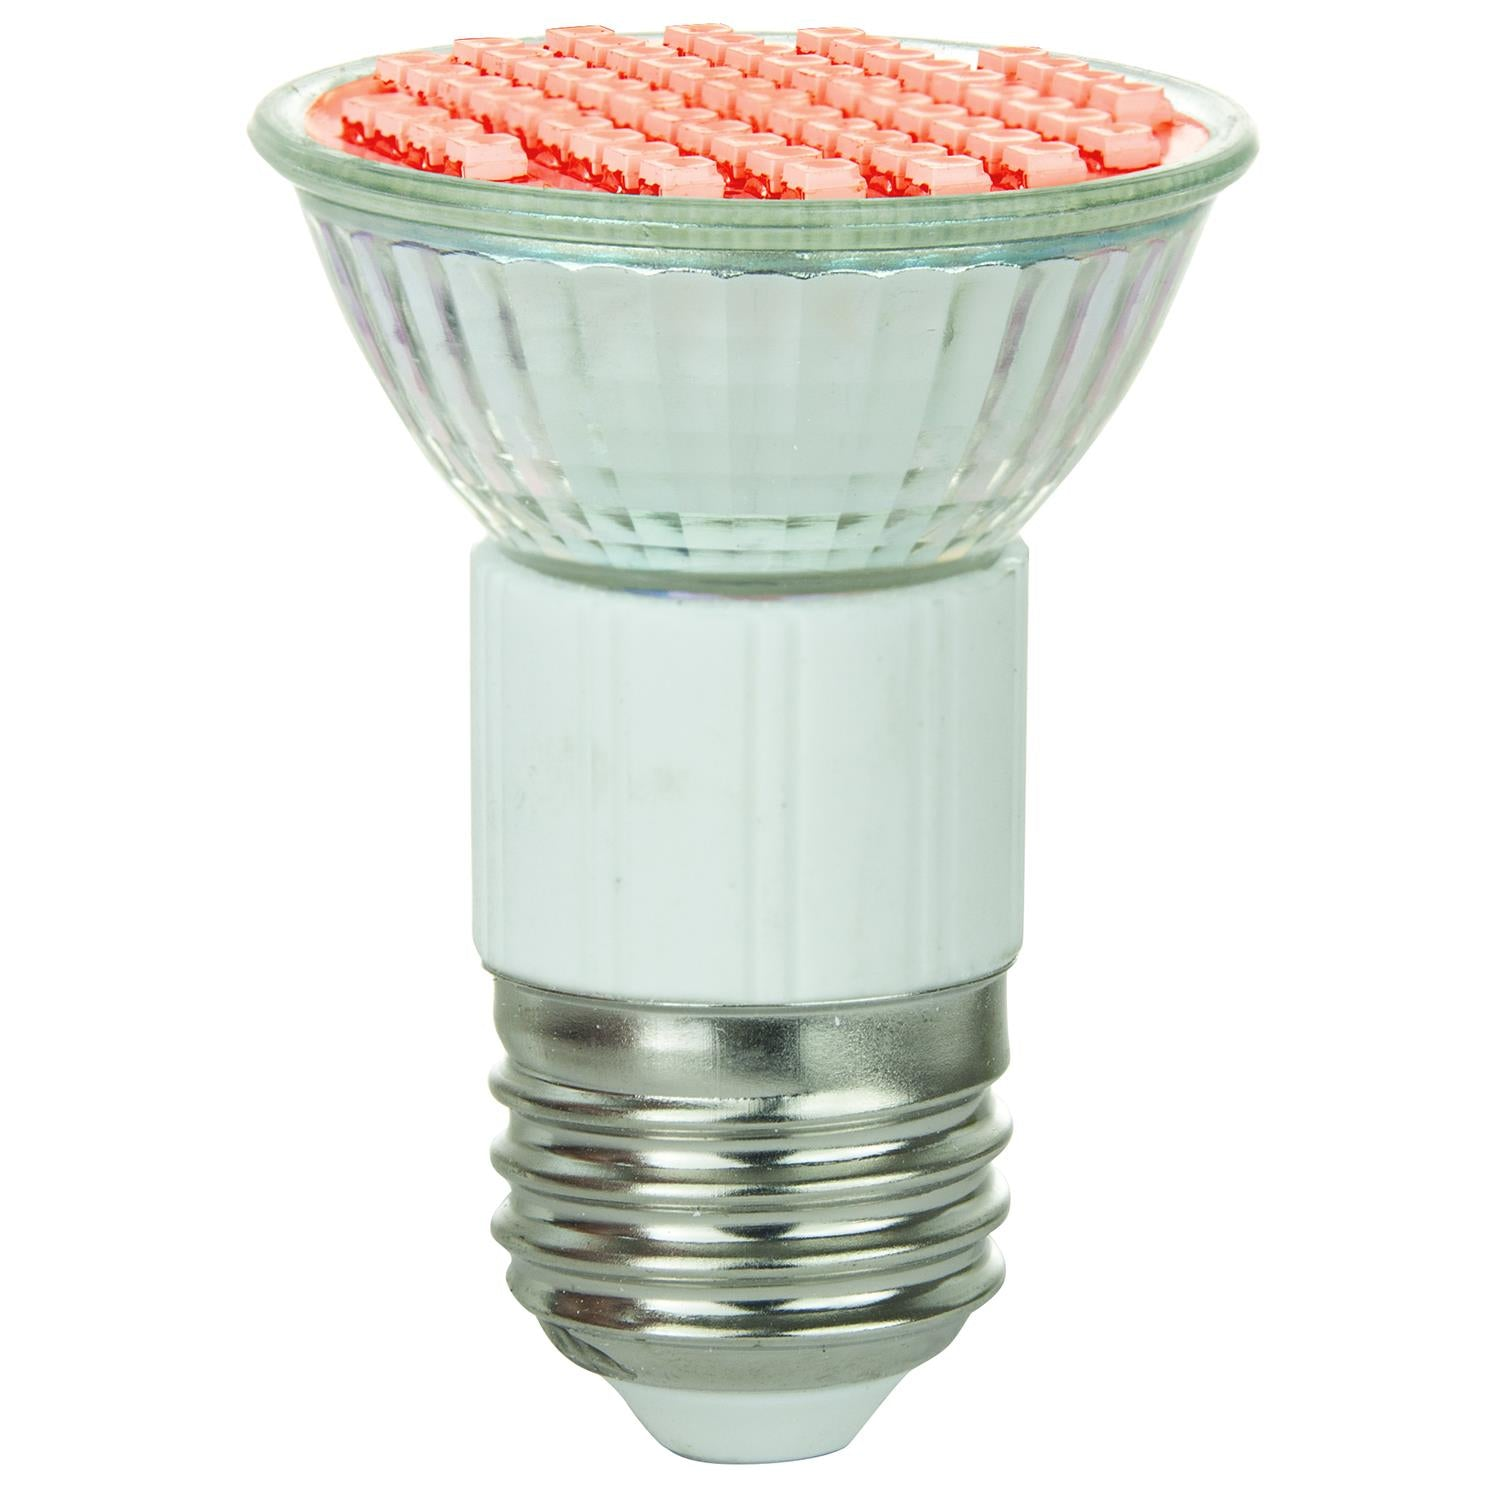 SUNLITE 80197-SU LED MR16 Colored Mini Reflector 2.8w Light Bulb Red